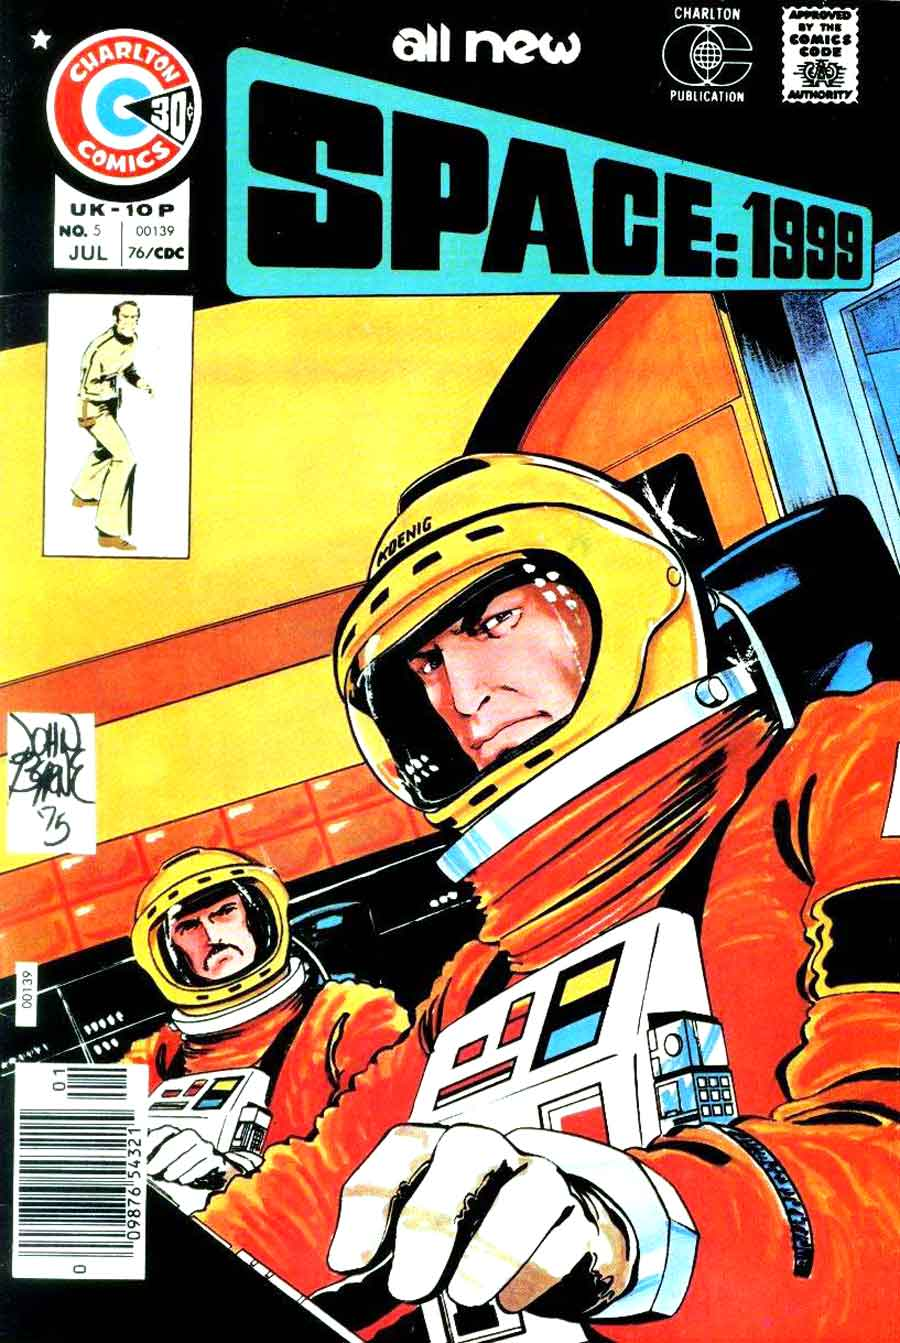 Space 1999 v1 #5 chalrton bronze age comic book cover art by John Byrne